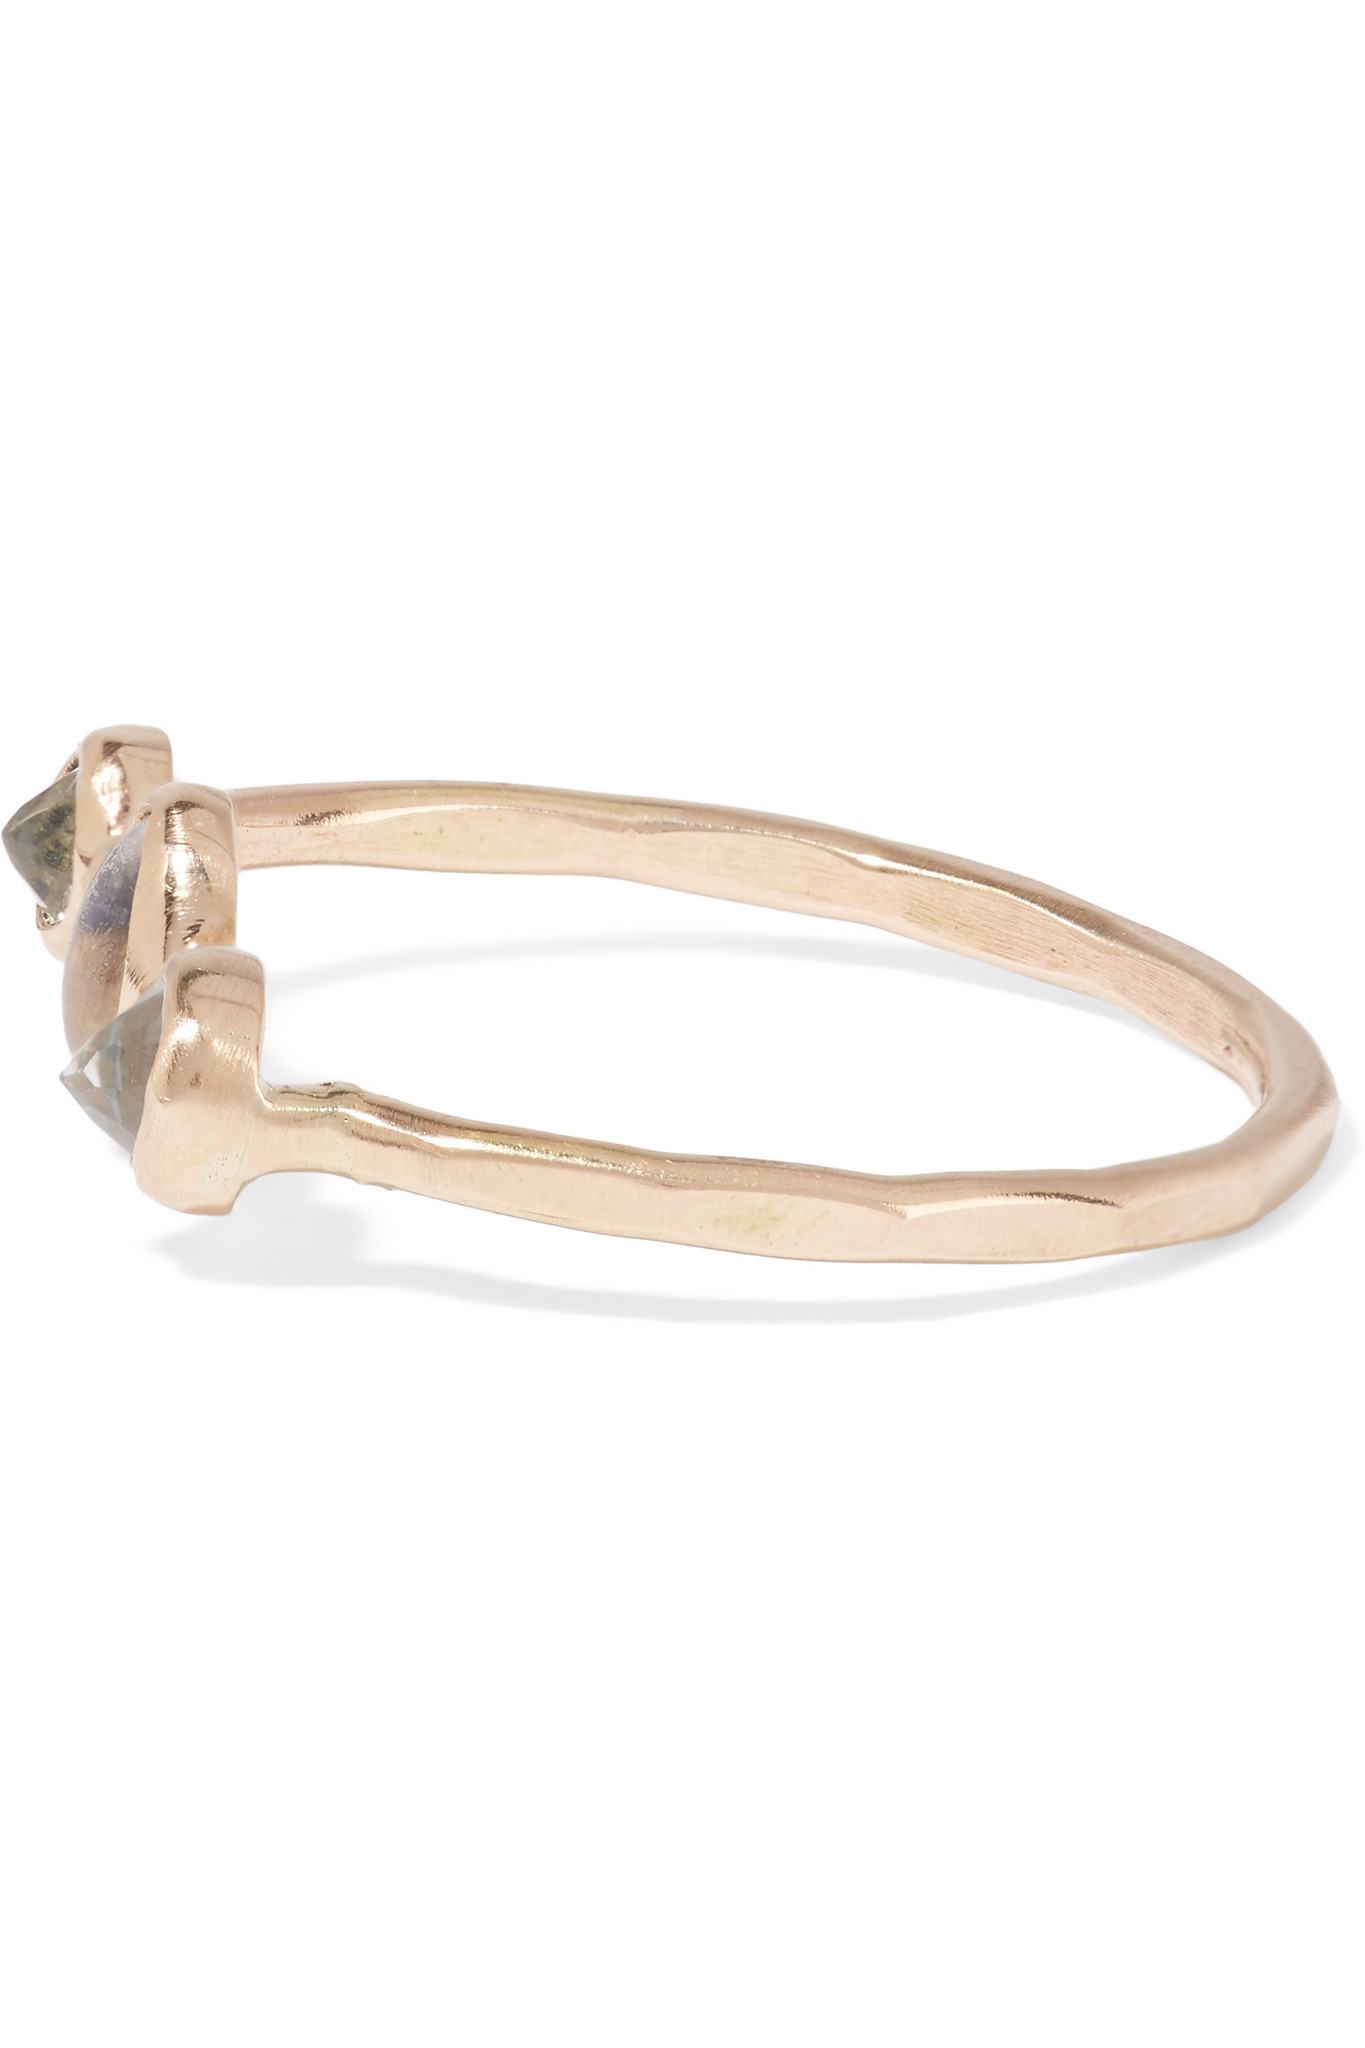 Melissa Joy Manning 14-karat Gold Interlocking Ring tcw8UmMI